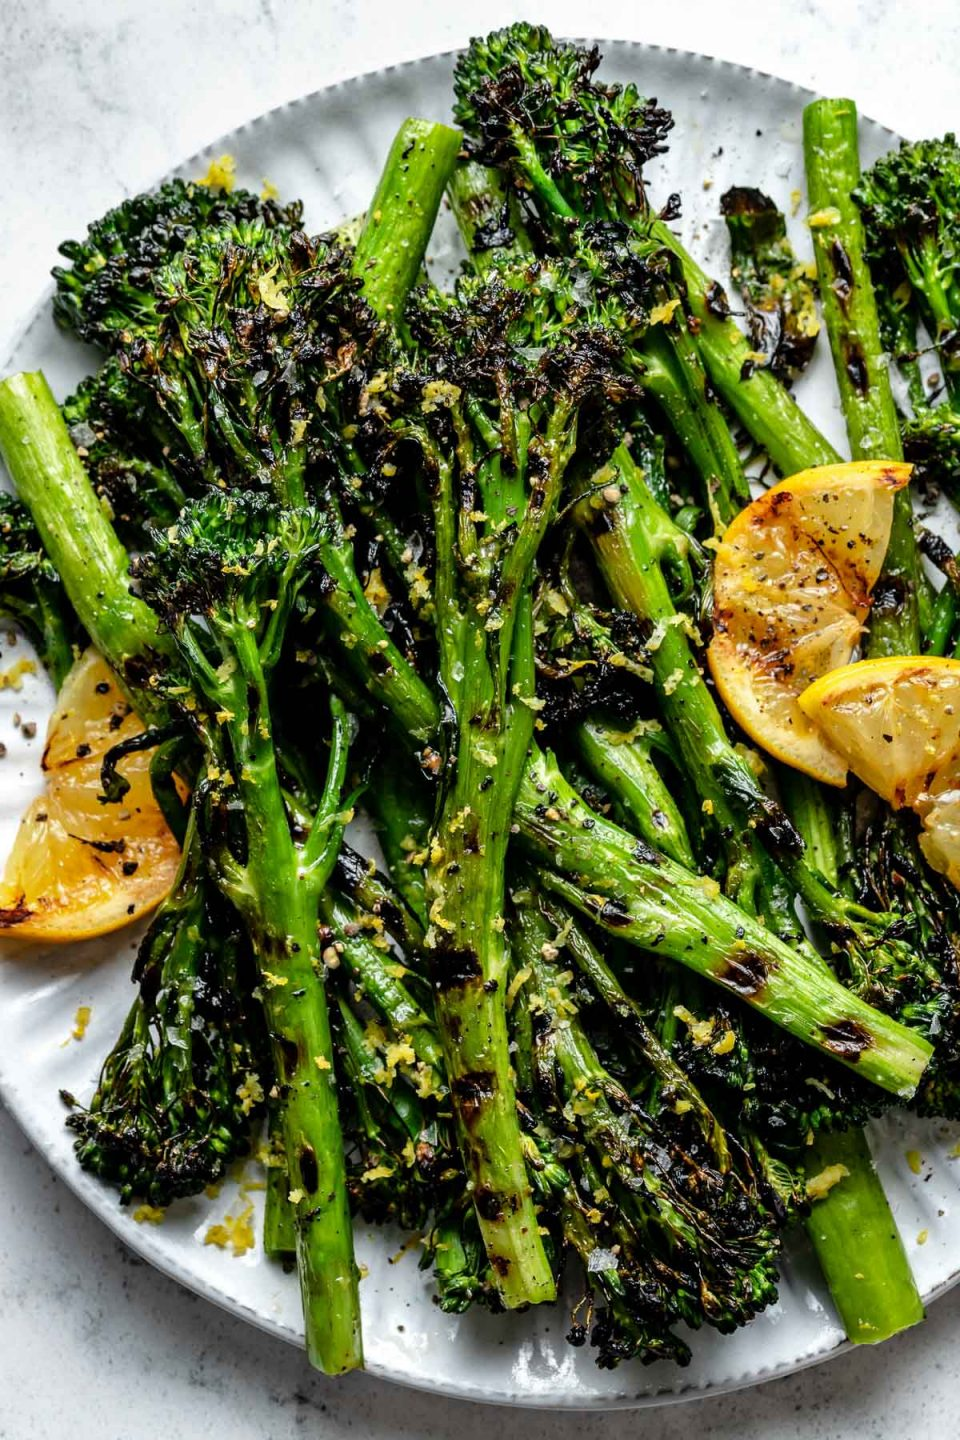 Close up of grilled broccolini with char marks arranged on a white ceramic plate. The pieces of grilled broccolini are garnished with kosher salt, ground black pepper, grilled lemon wedges, & lemon zest. The plate sits on top of a white & gray marble surface.